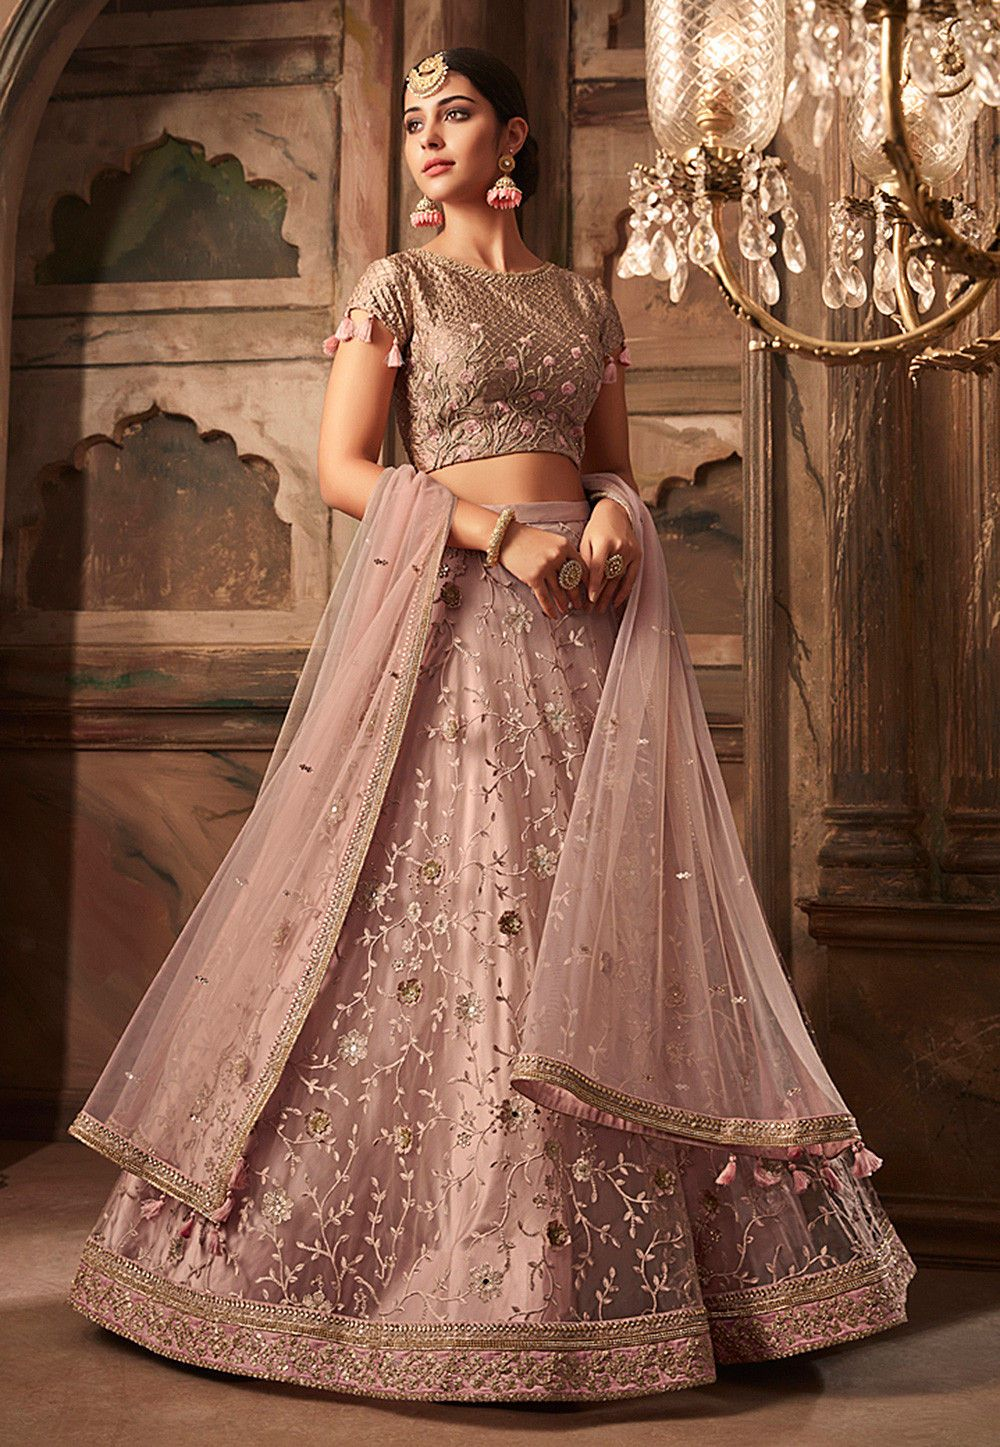 4f901785f4 Buy Embroidered Net Lehenga in Dusty Pink online, Item code: LQM264, Color:  Pink, Occasion: Wedding, Work: Contemporary, Resham, Stone Work, Zari, ...